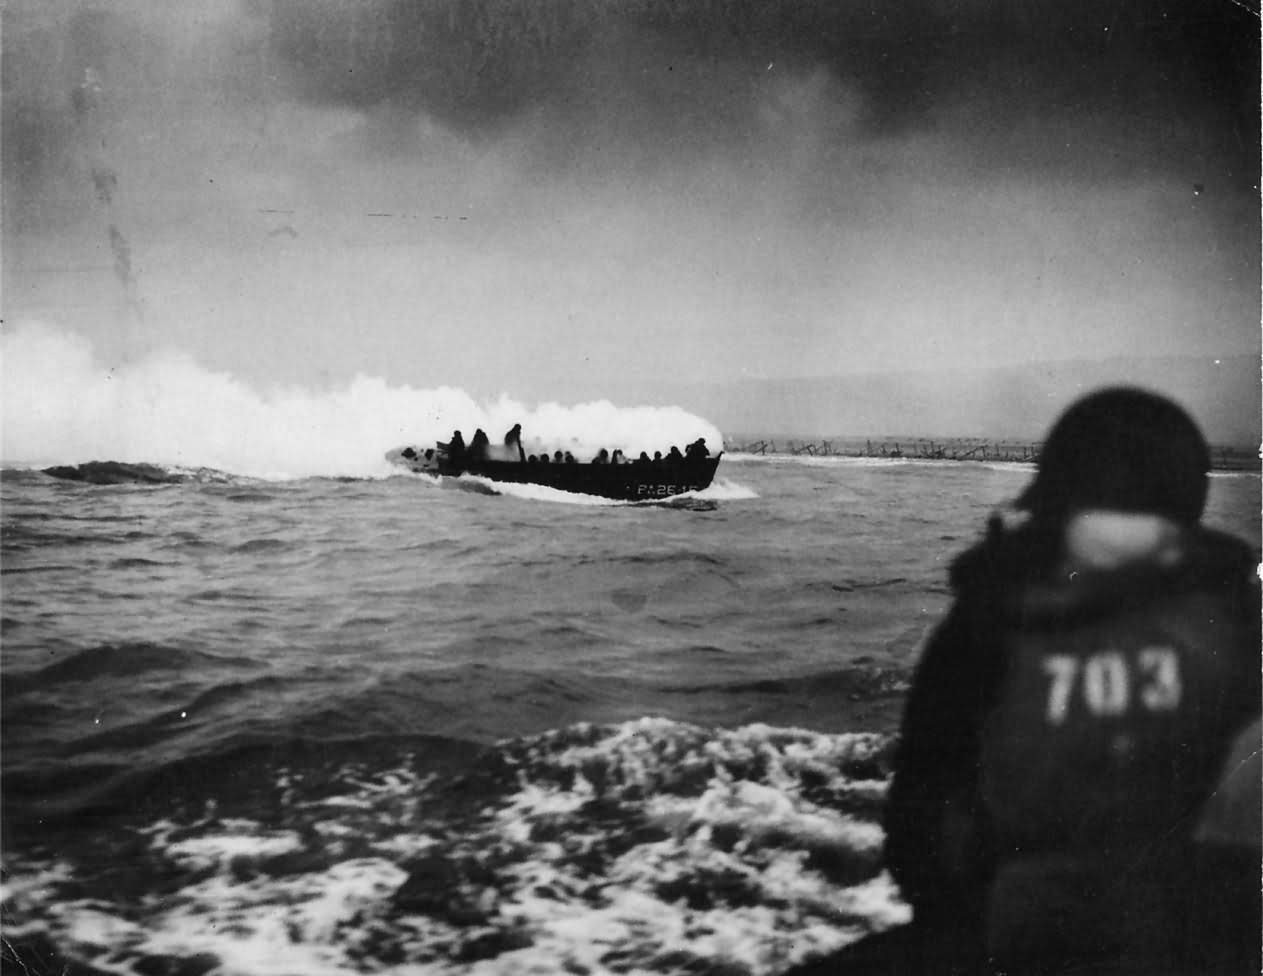 1st Battalion Troops in LCVP Approach Omaha Beach on D-Day 1944